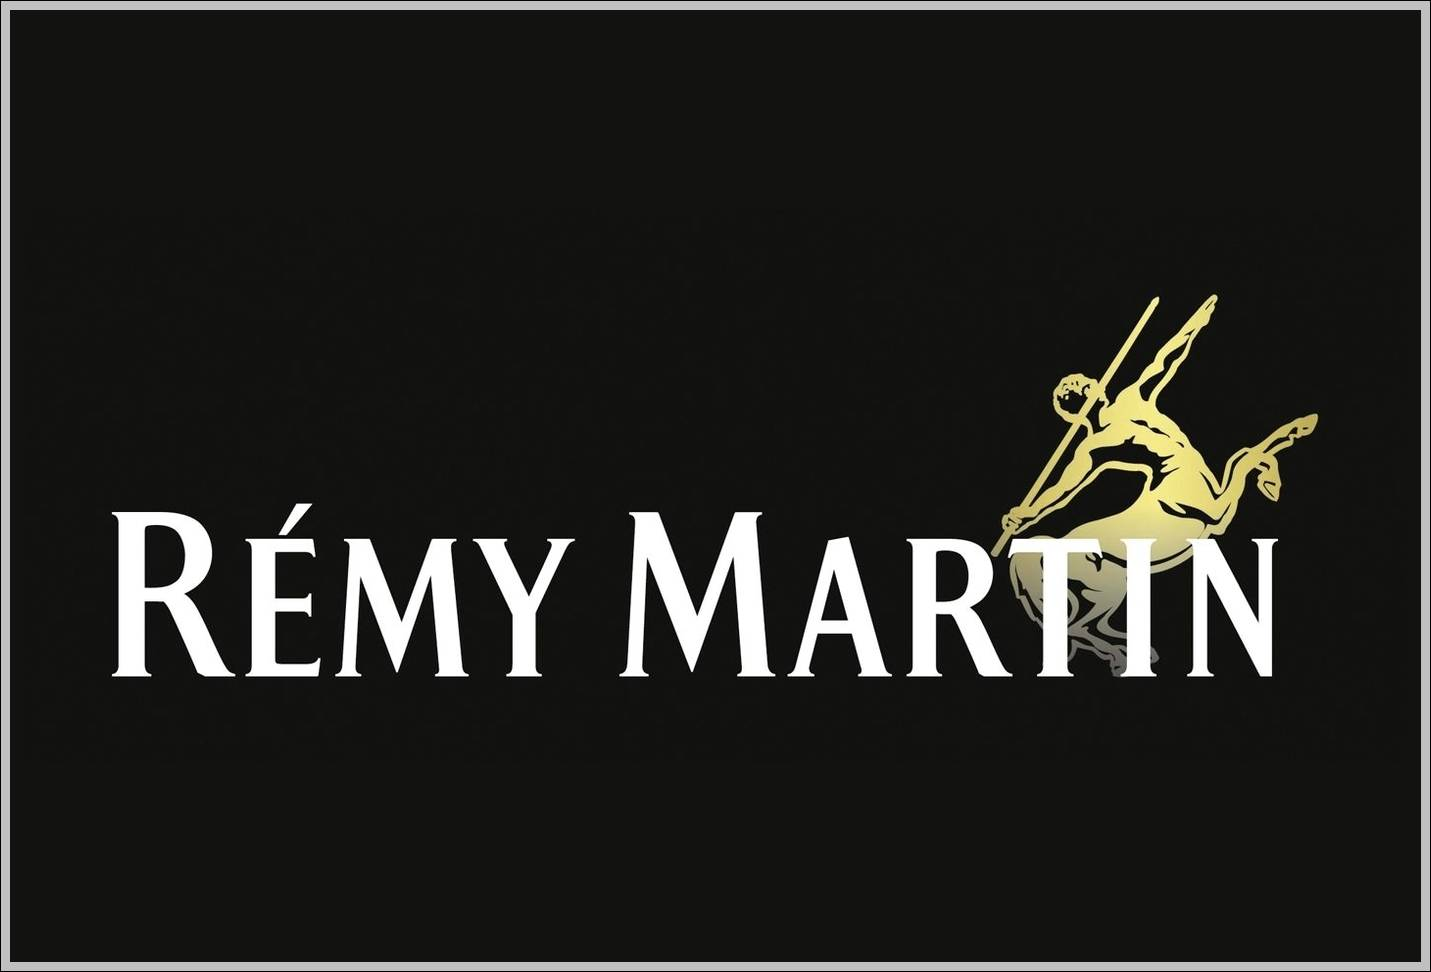 Remy Martin sign